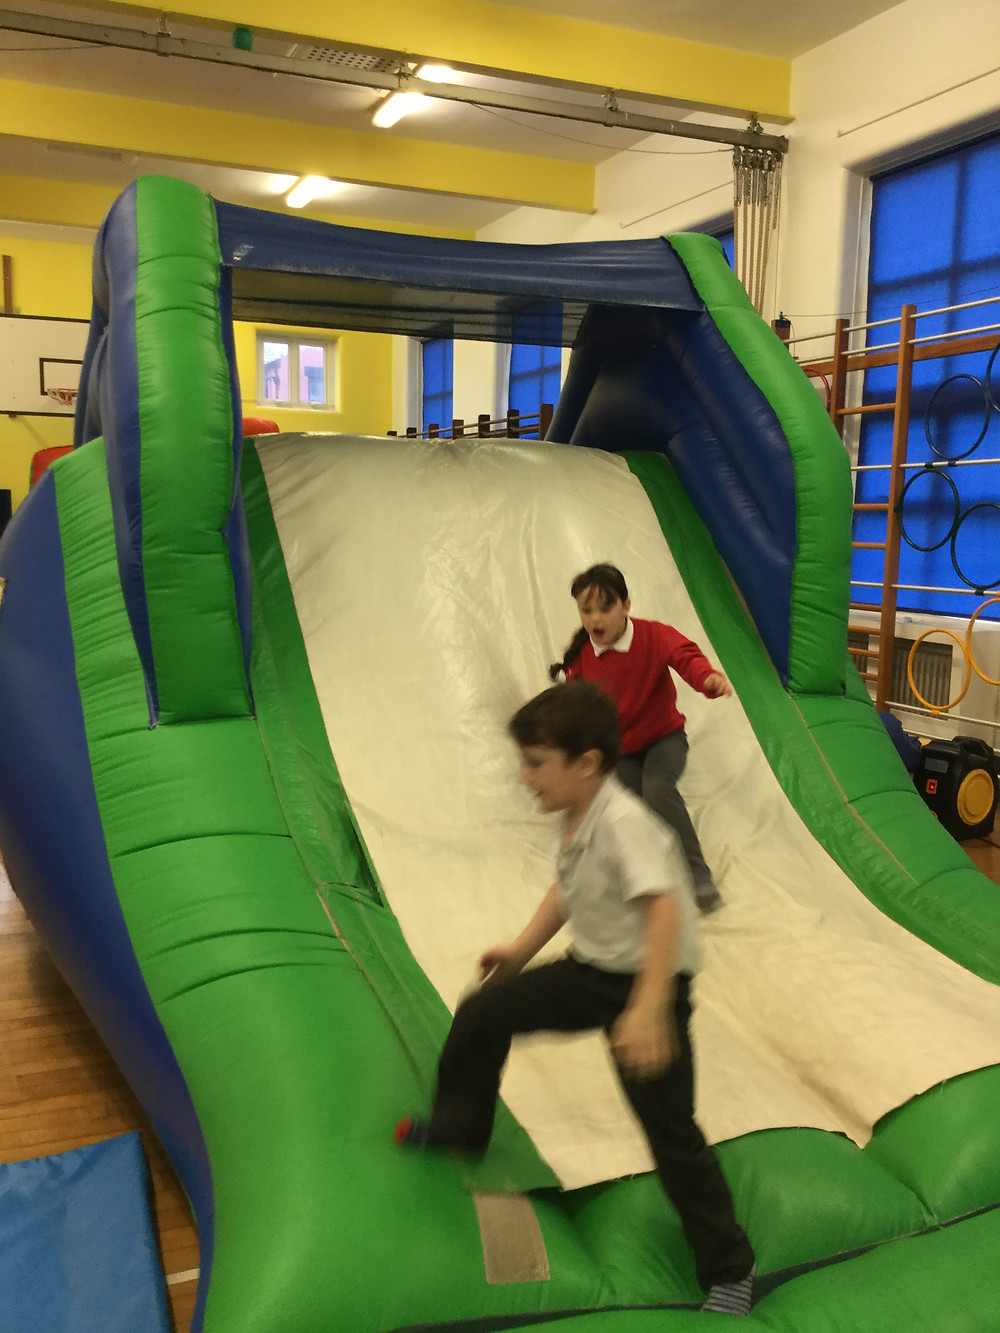 We had lots of fun on the inflatables! We deserved it after all of our hard work this half term!